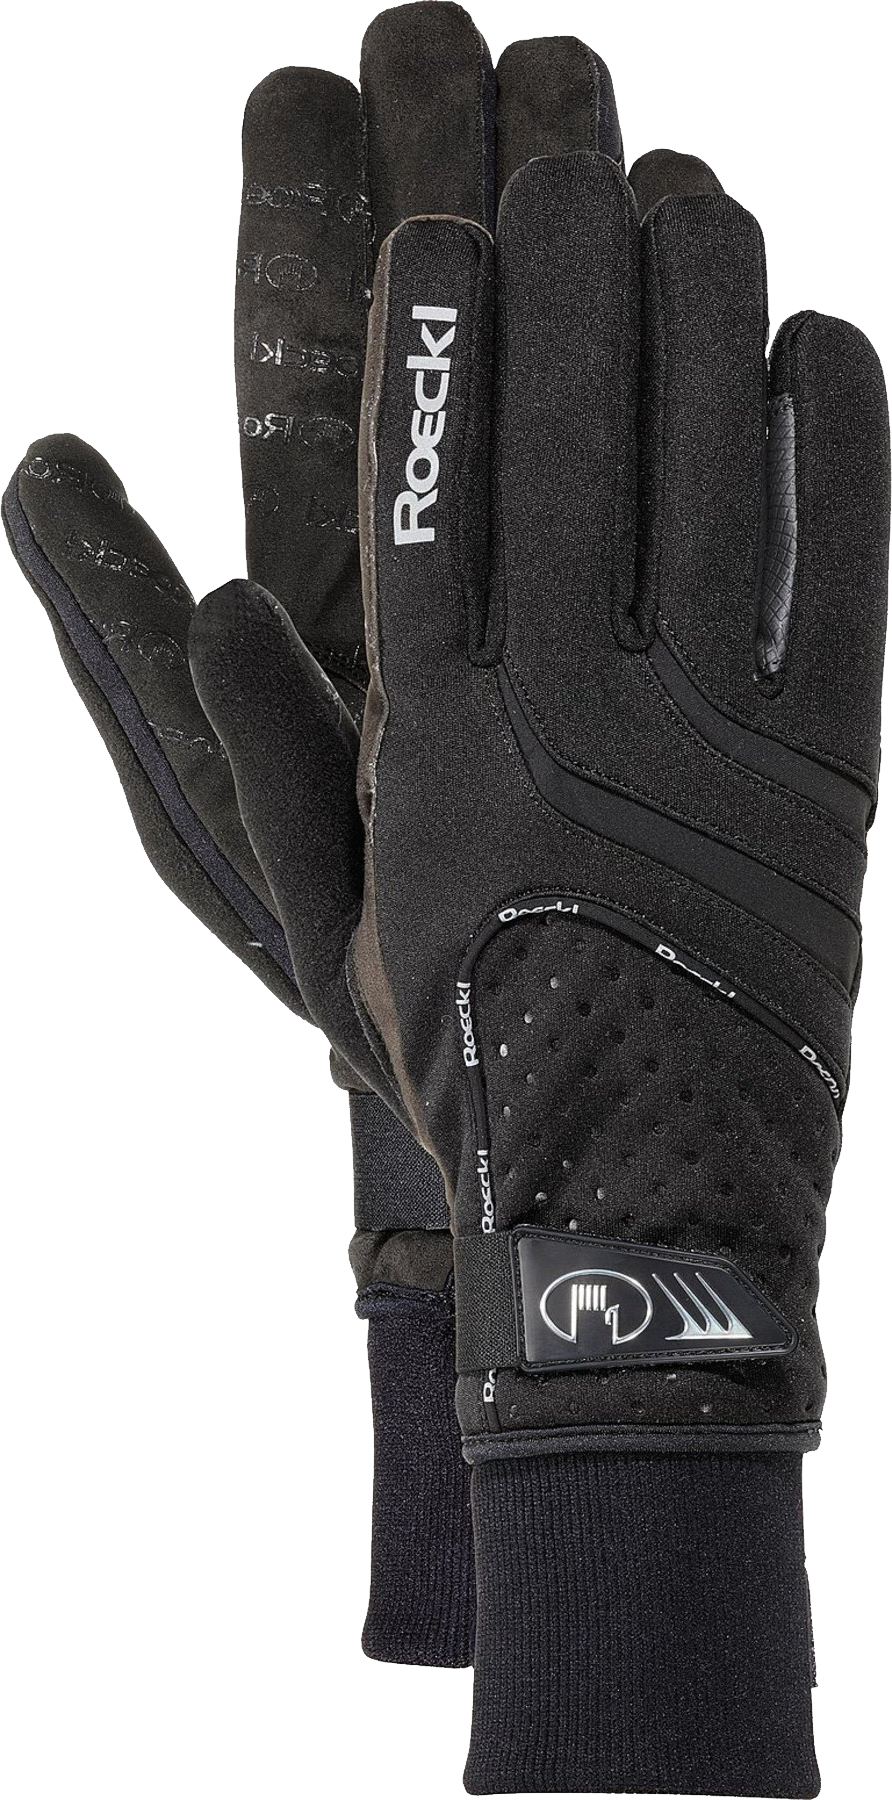 uploads gloves gloves PNG80243 5